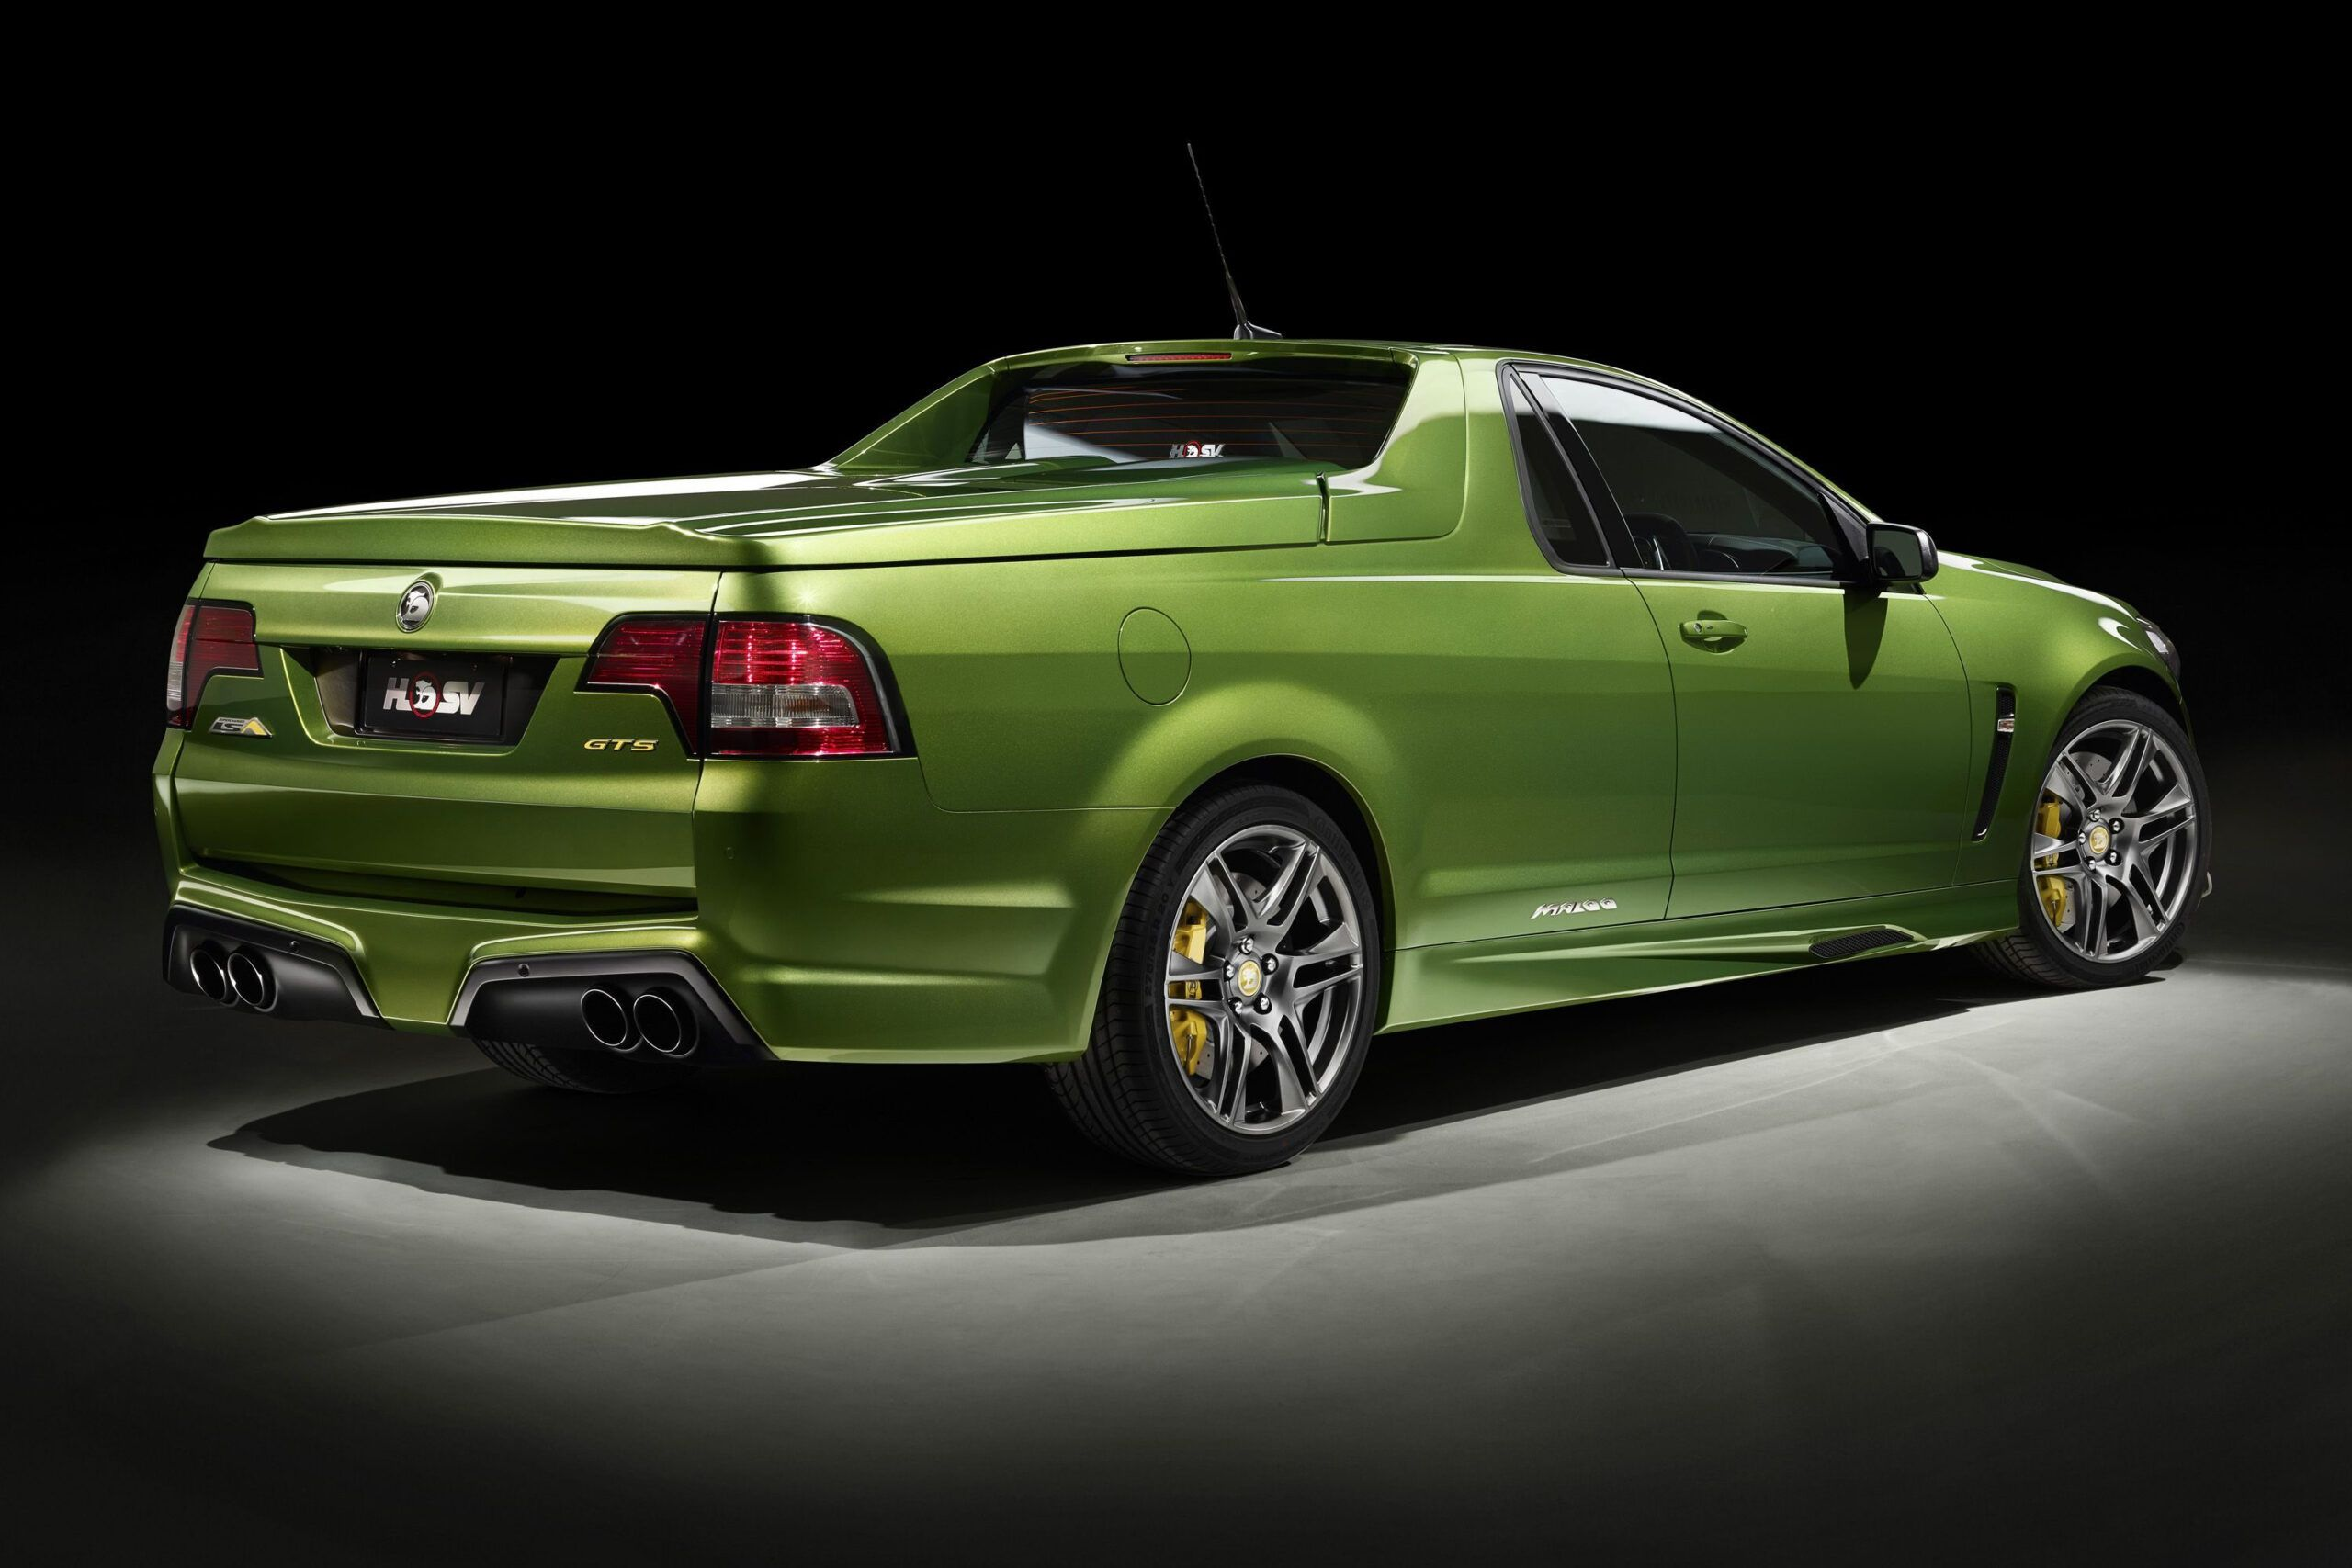 3 Holden Commodore Gts Redesign in 3  Holden maloo, Pickup